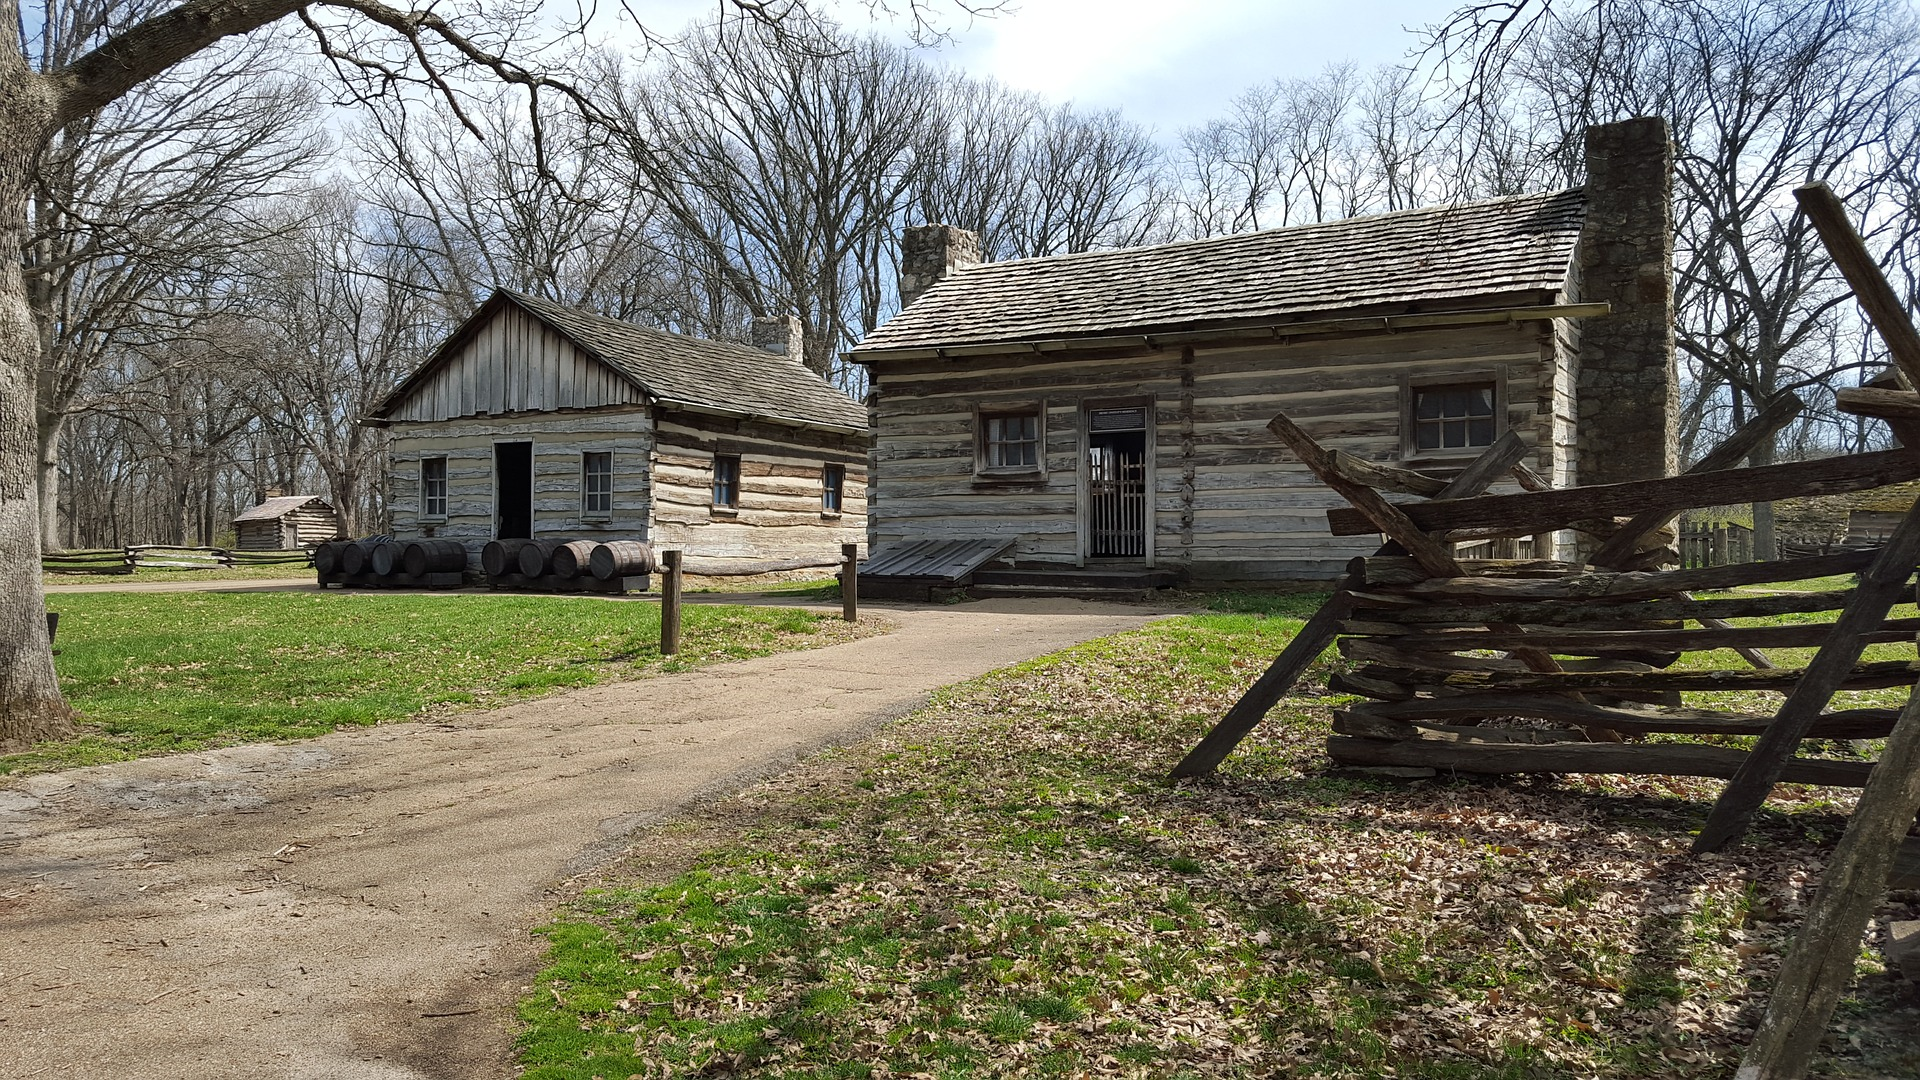 lincolns new salem divorced singles Lincoln chronology  abraham lincoln left his family and arrived in new salem he was 22 years old  the lincolns rent a single room on the second floor of the .